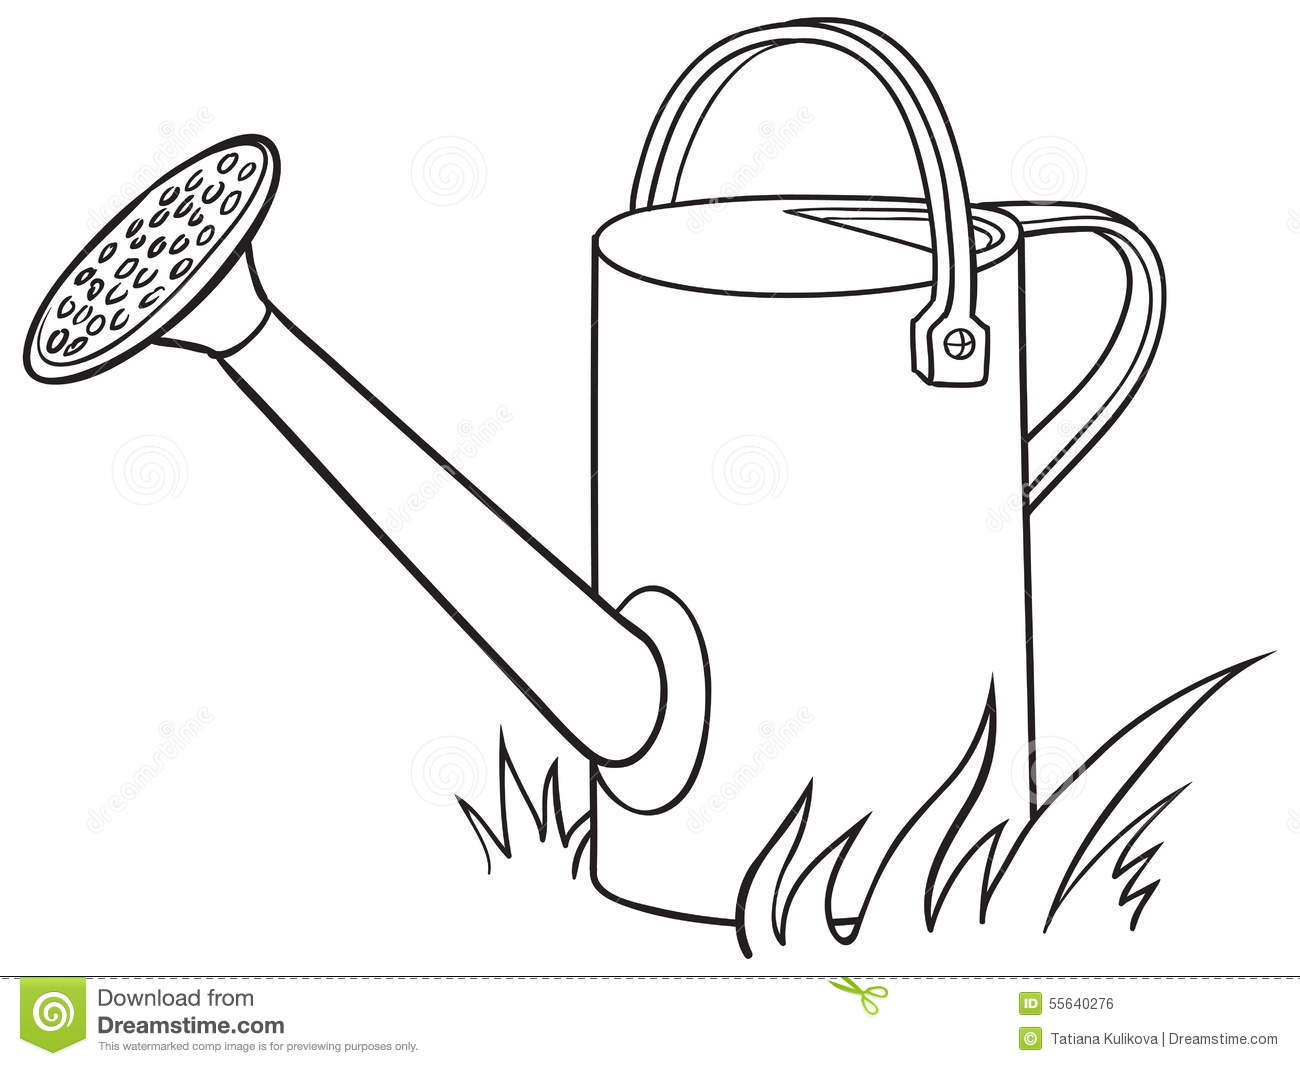 Diesel Electrical Irrigation Horizontal 6x4 Water 1817777991 besides Roof Garden Section additionally Ancient Egyptian House together with Dam Building In Ethiopia Water Worries In Egypt in addition Stock Illustration Watering Can Garden Vector Illustration Image55640276. on irrigation drawing